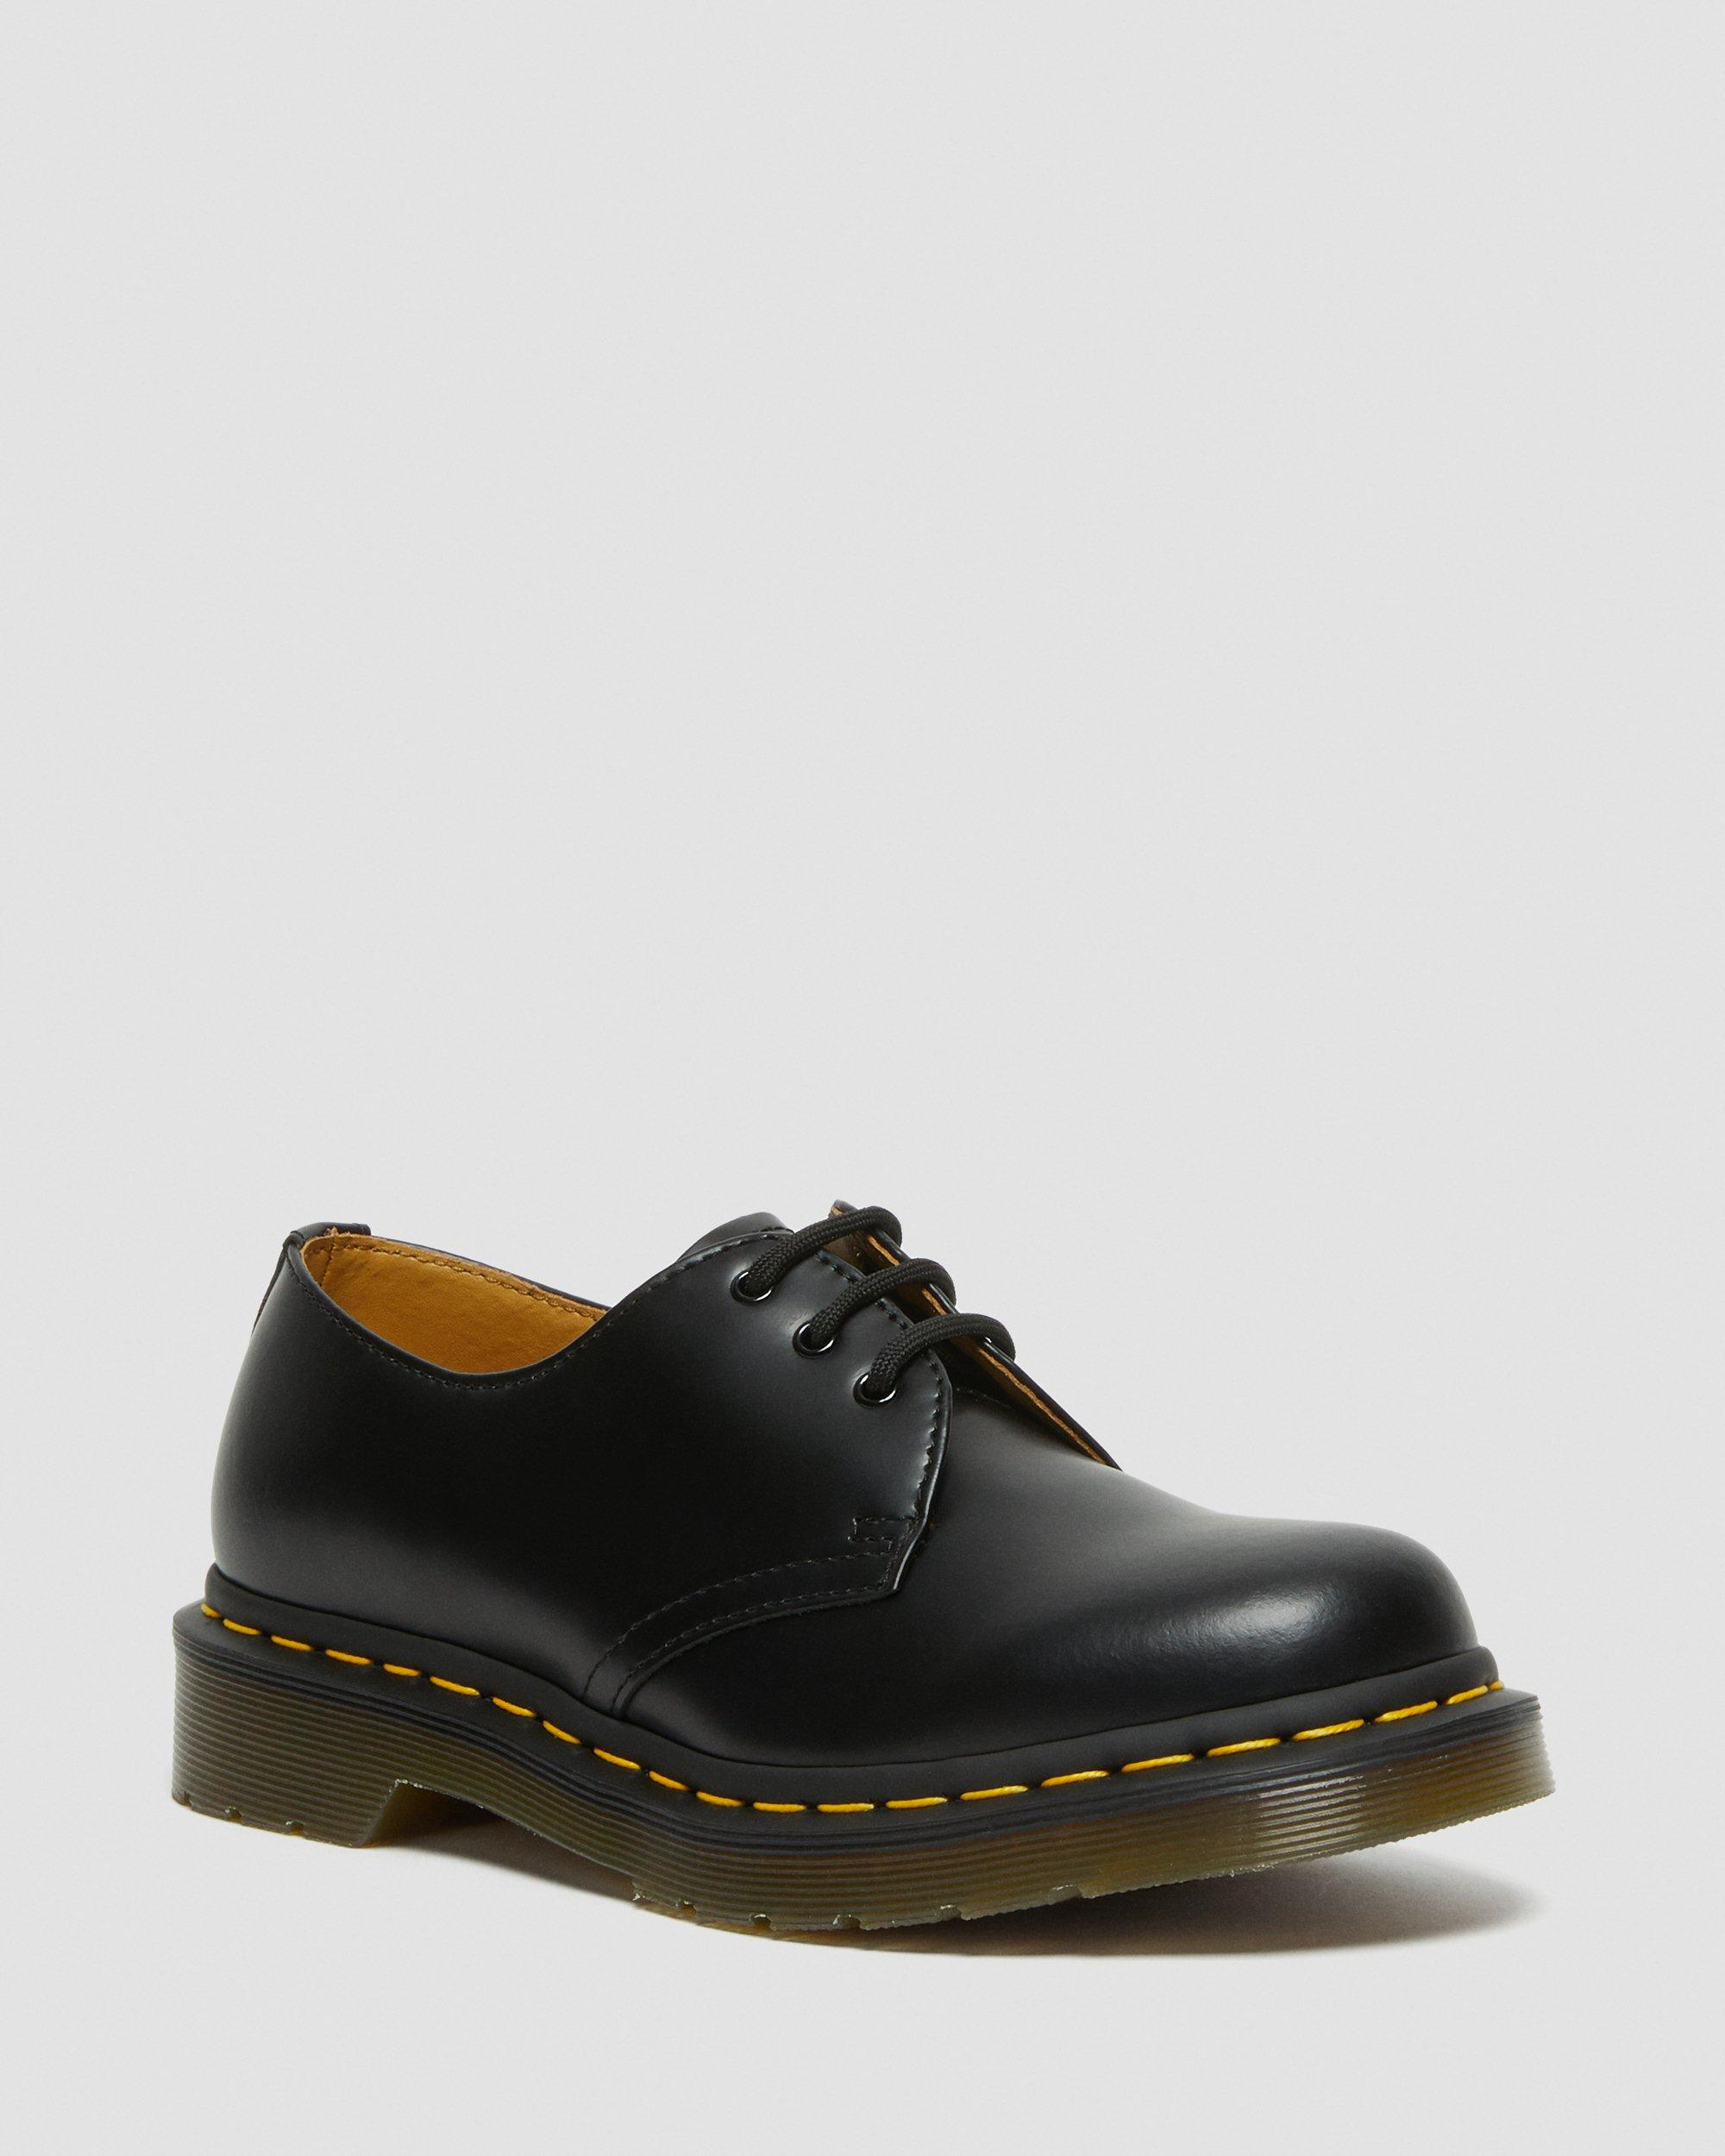 SMOOTH LEATHER OXFORD SHOES | Dr. Martens